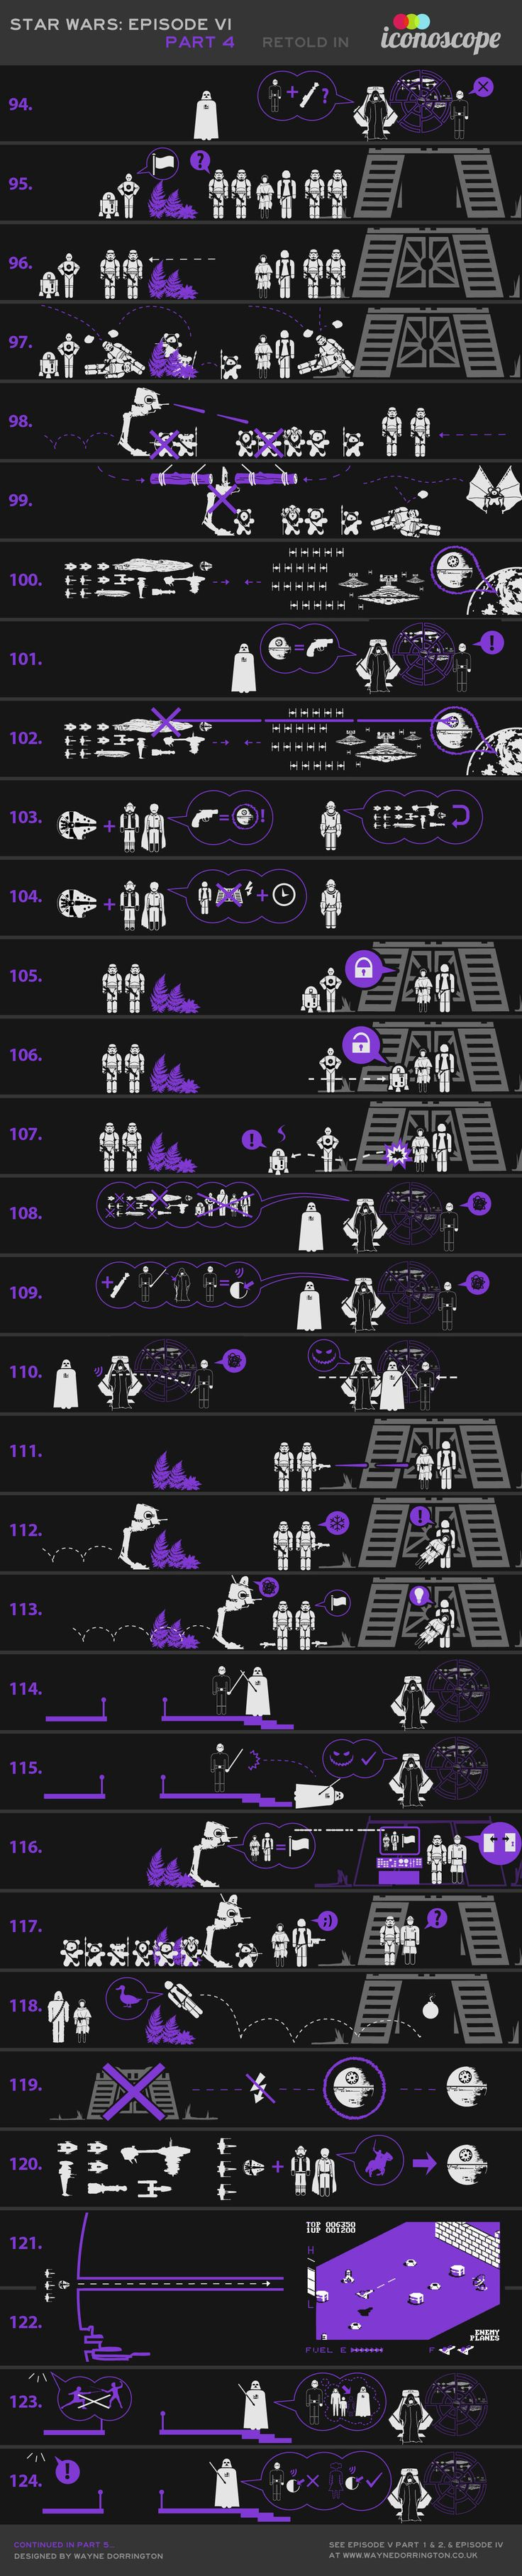 Star Wars Episode VI (Return of the Jedi) - Part 4 [INFOGRAPHICS]